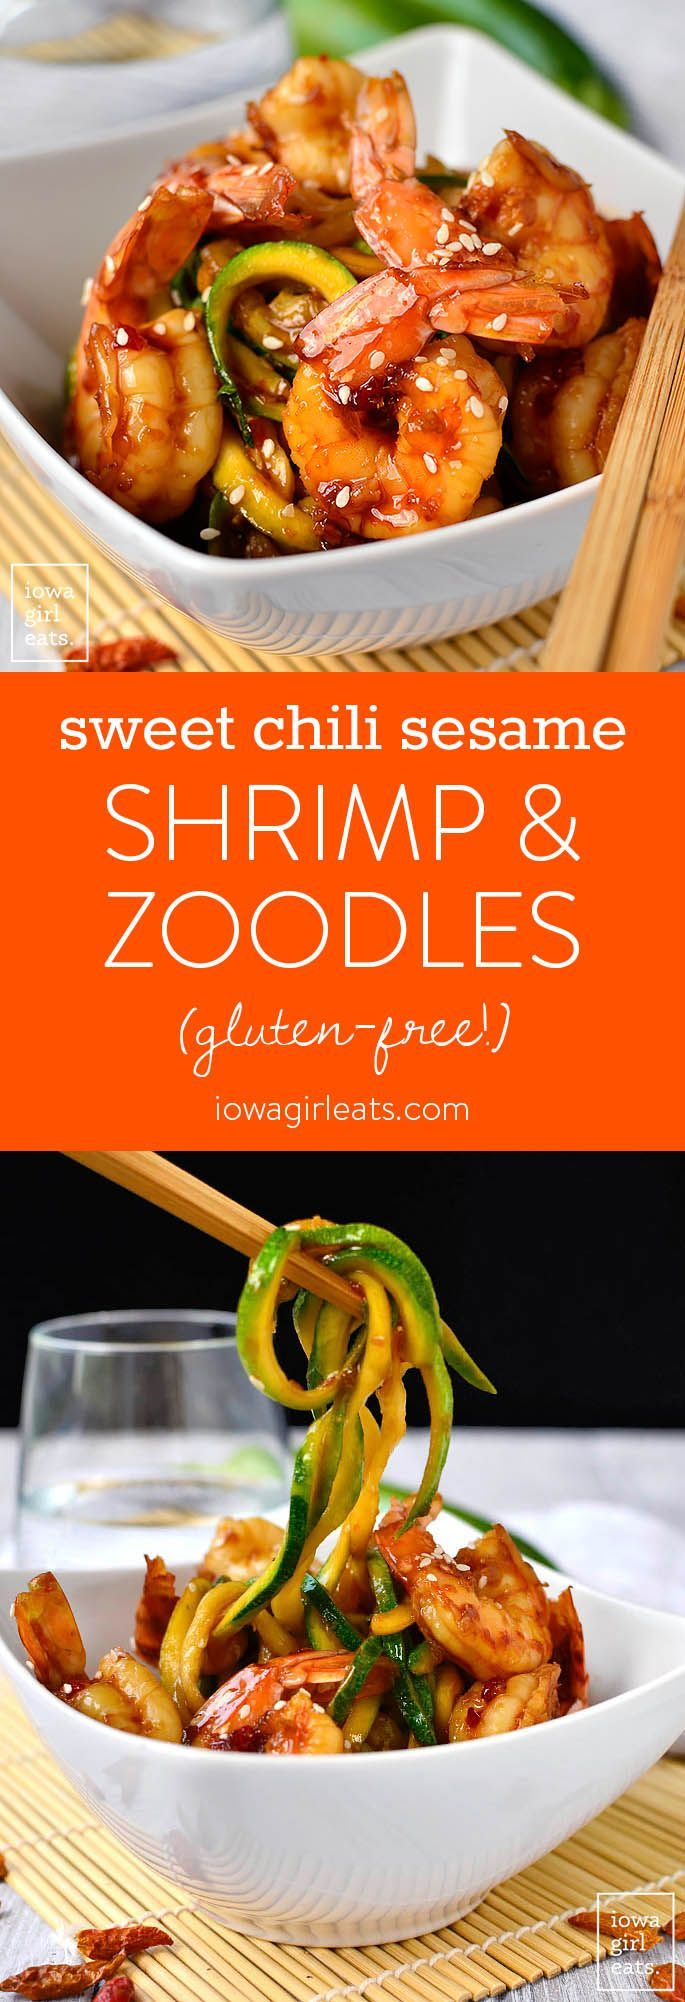 Sweet Chili Sesame Shrimp and Zoodles takes minutes to cook and is full of tongue-tingling flavor. This light and healthy gluten-free recipe calls for just 5 ingredients!  | iowagirleats.com